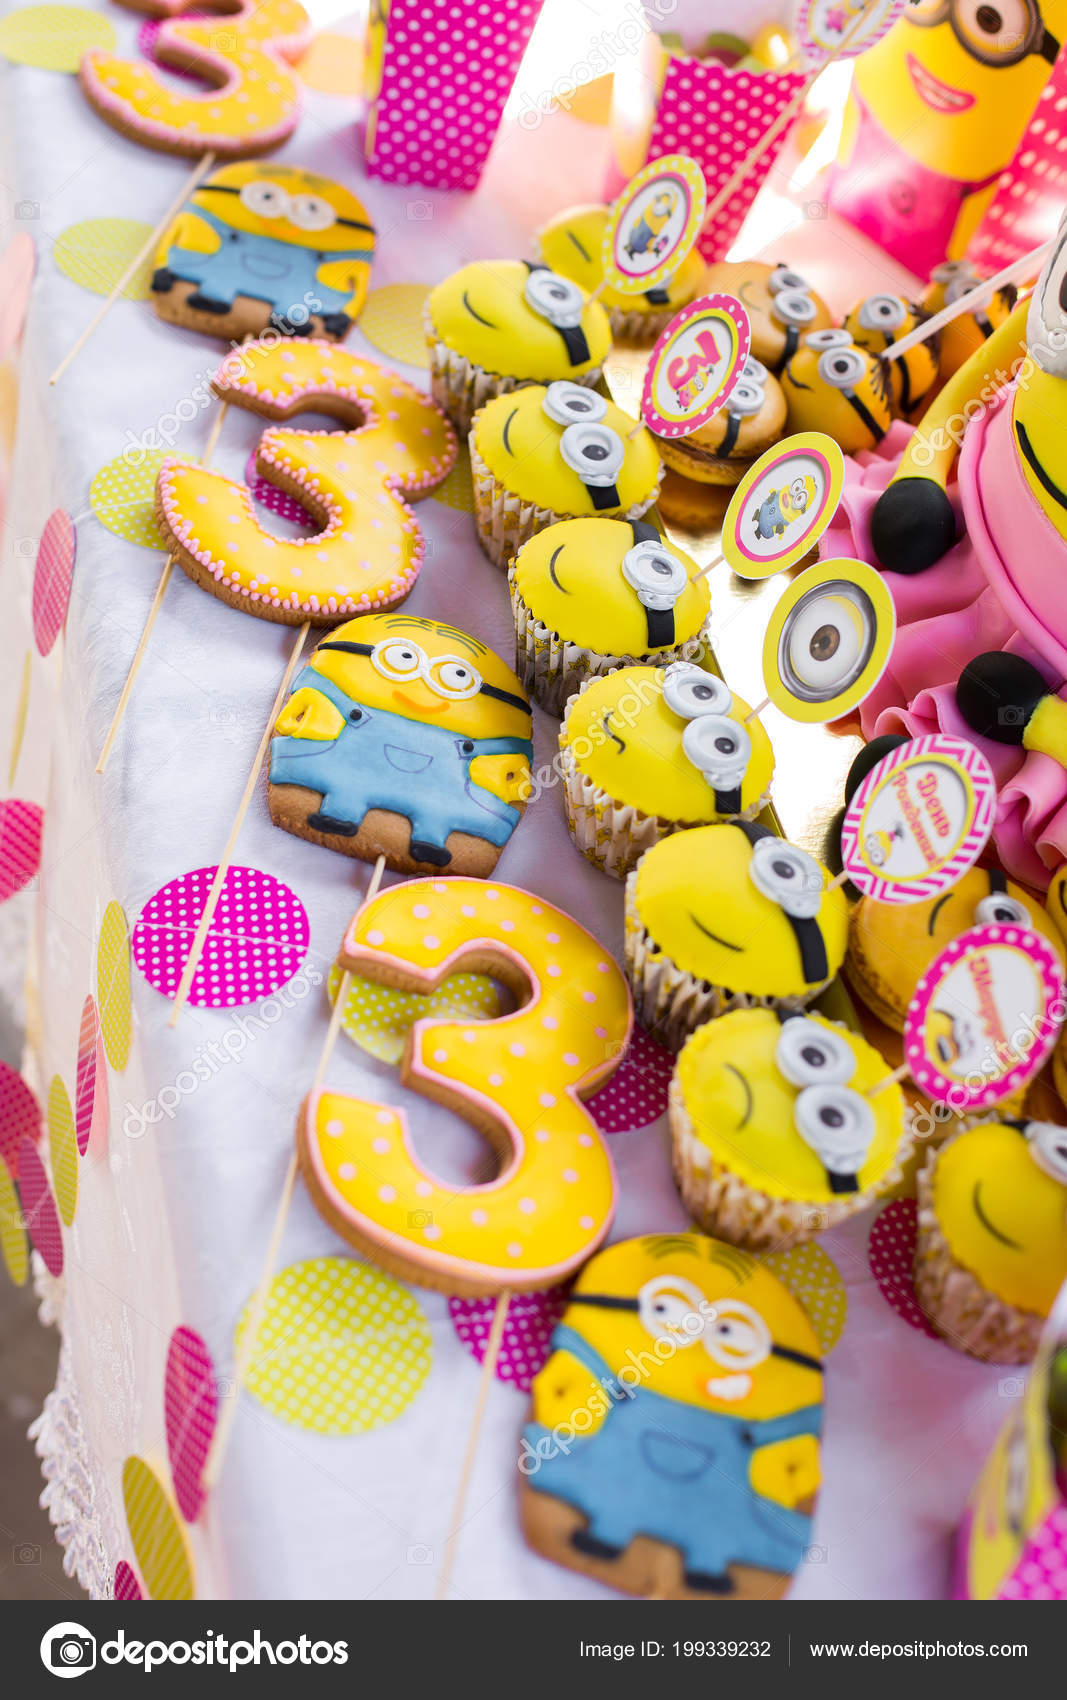 Minions Theme Sweet Birthday Candy Bar Decoration Stock Photo